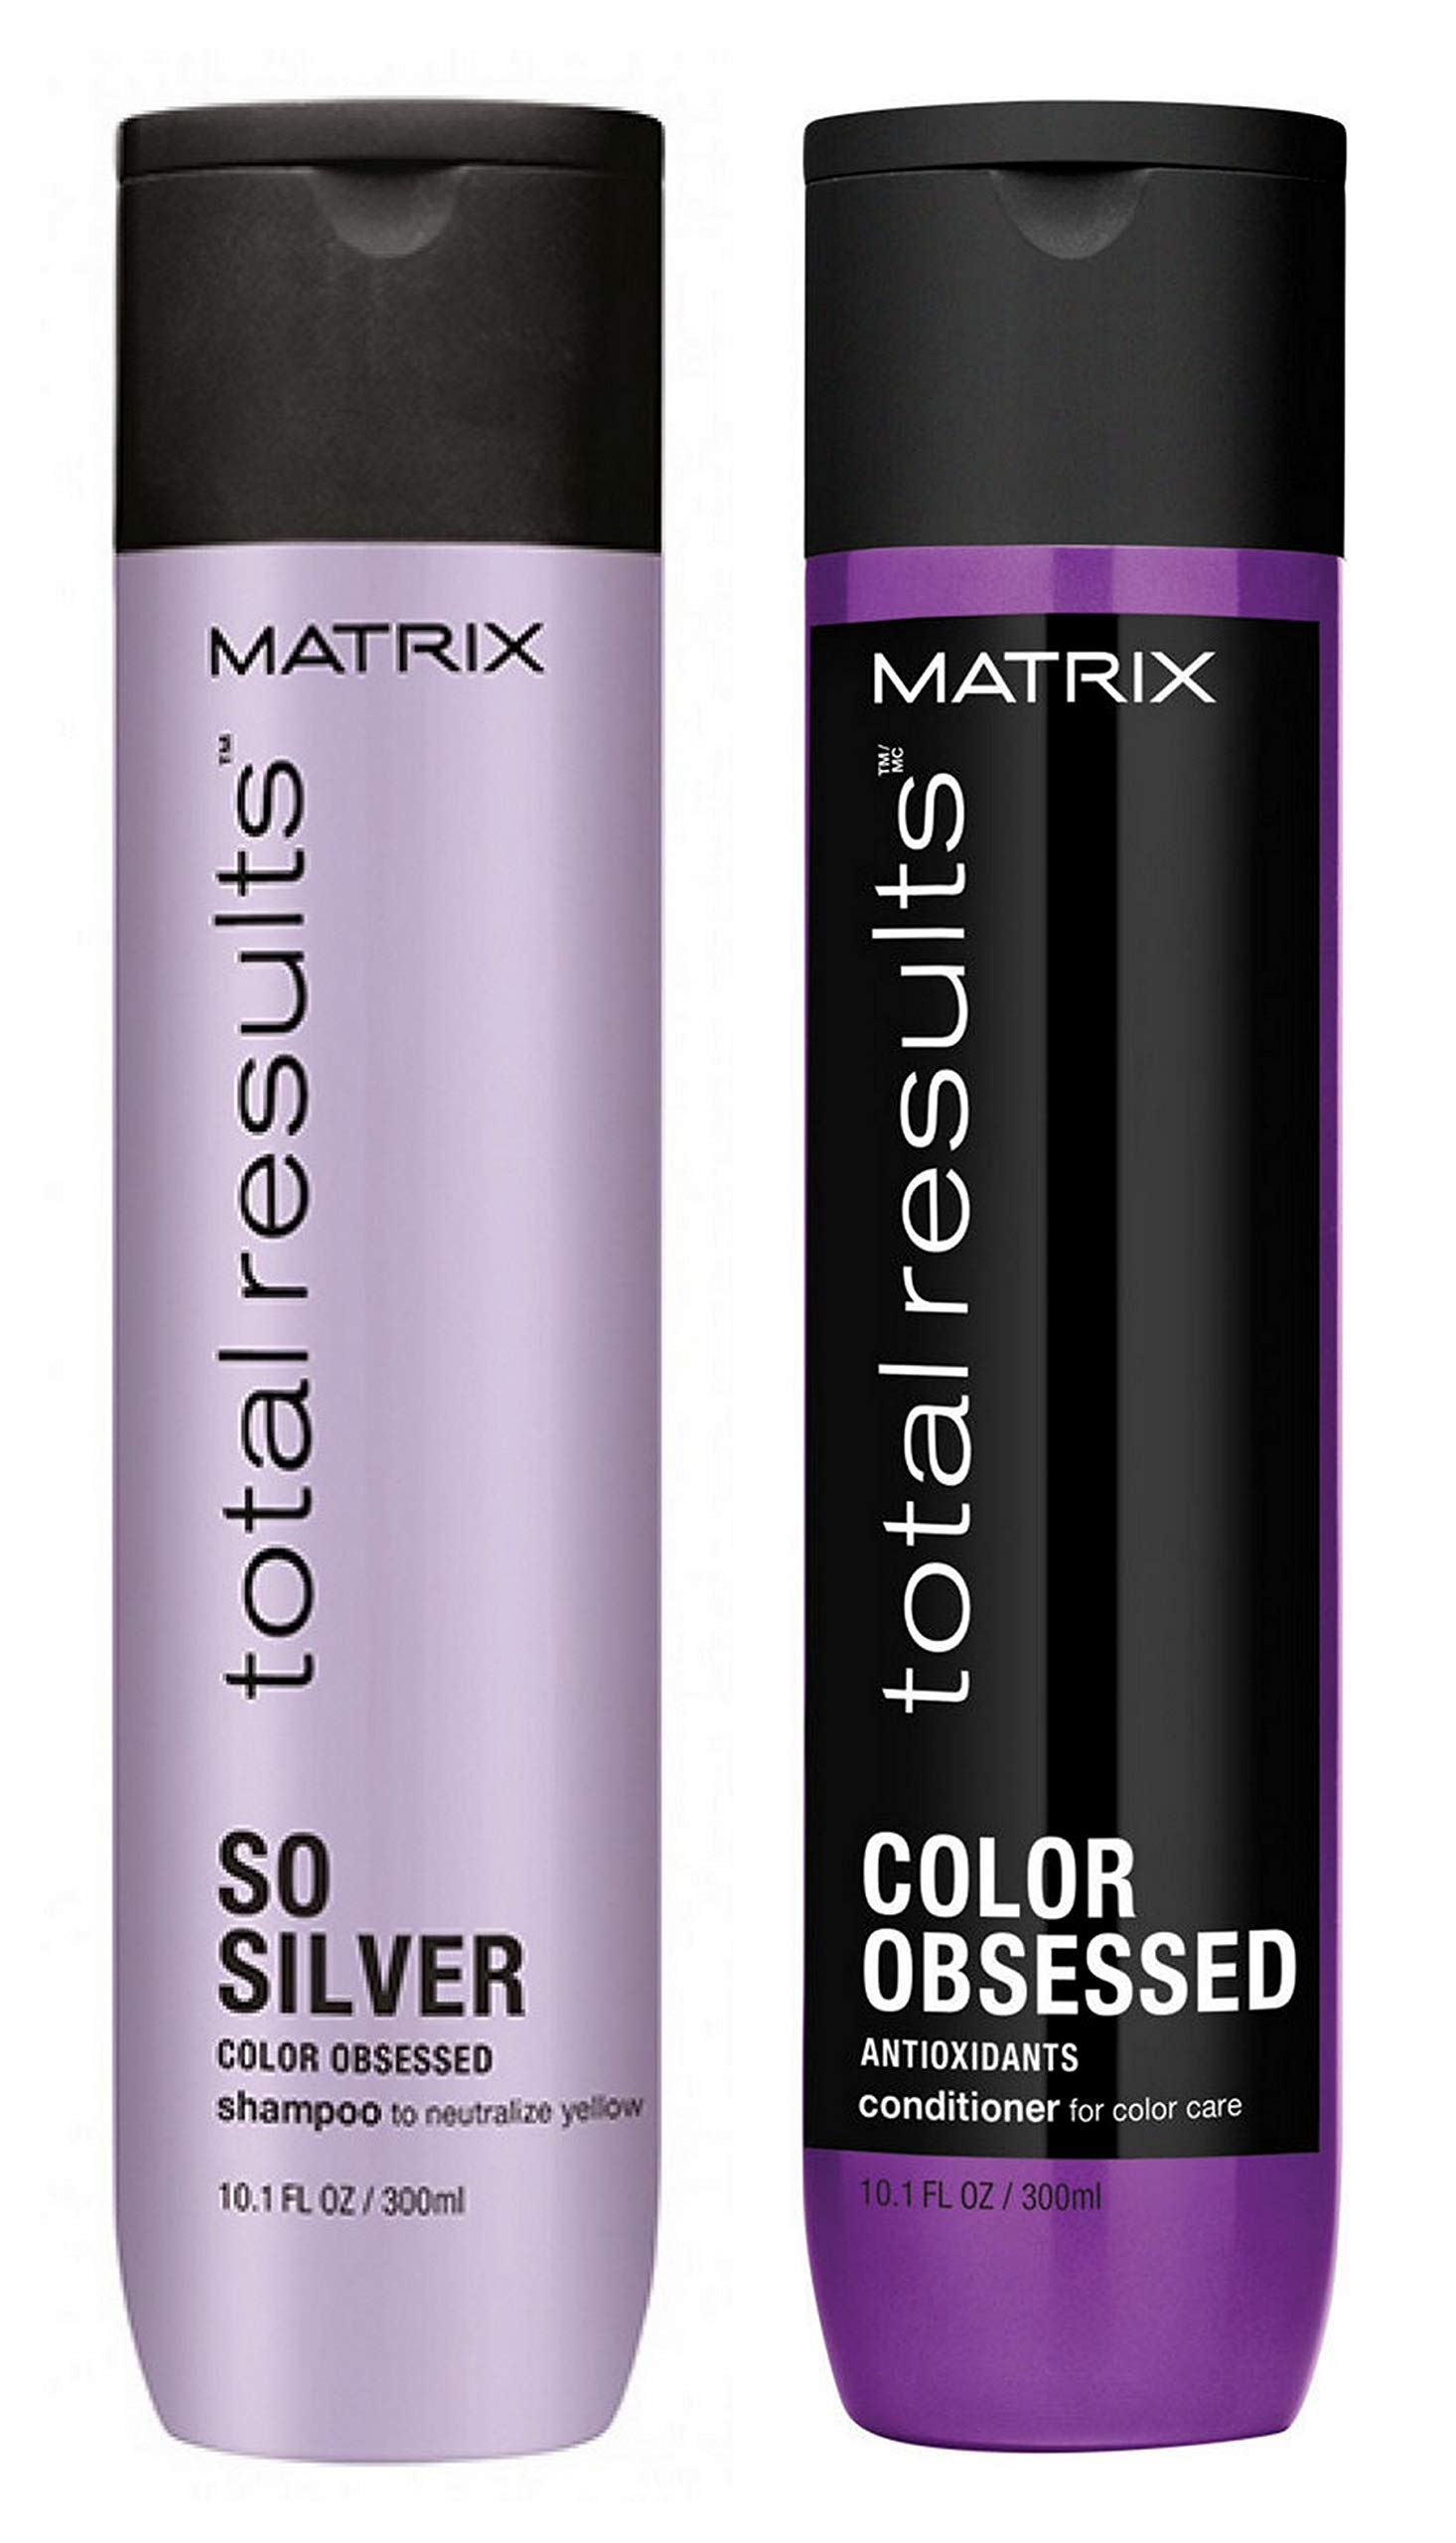 Matrix Total Results So Silver Shampoo and Color Obsessed Conditioner Duo 10.1 oz (Packaging may vary)